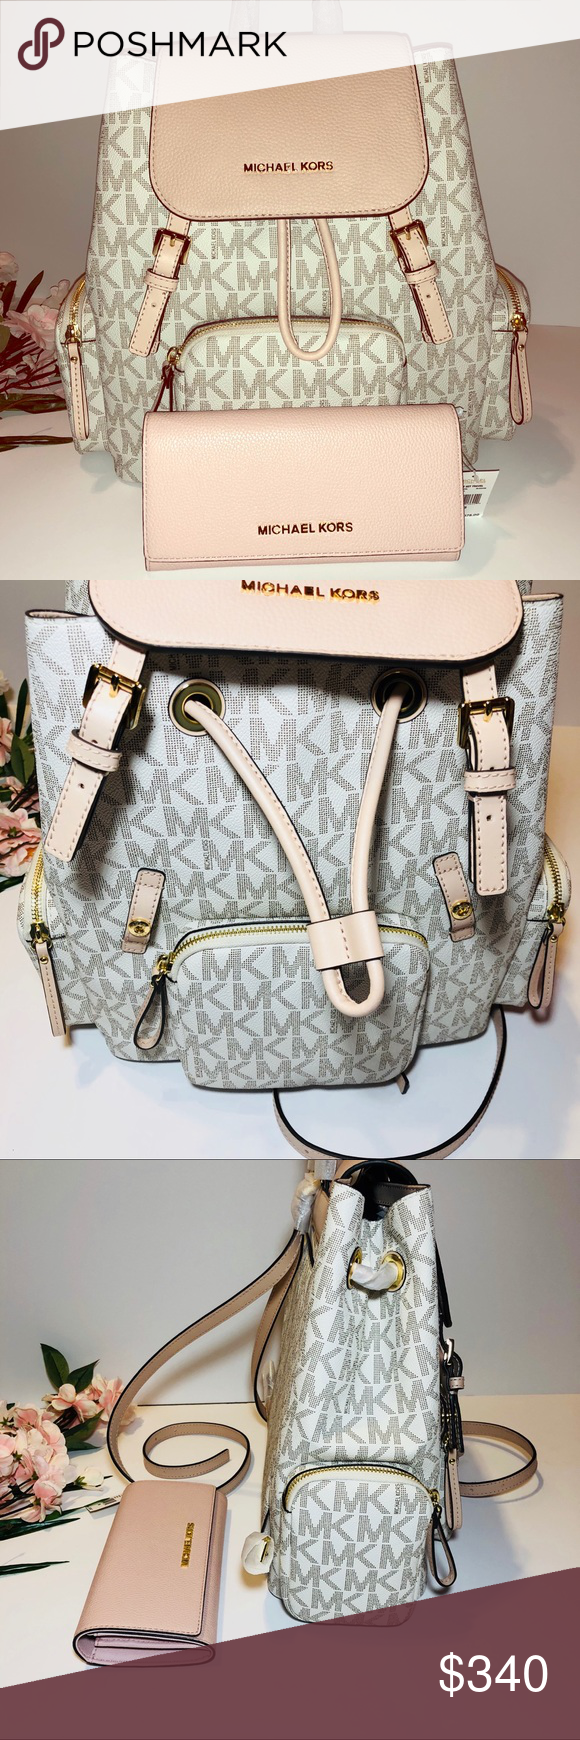 9e4eca0f78f7 NEW Michael Kors Abbey Cargo Backpack & Wallet Brand New Unique Michael  Kors Abbey Large Cargo Backpack Bag, Item comes brand new with tags!